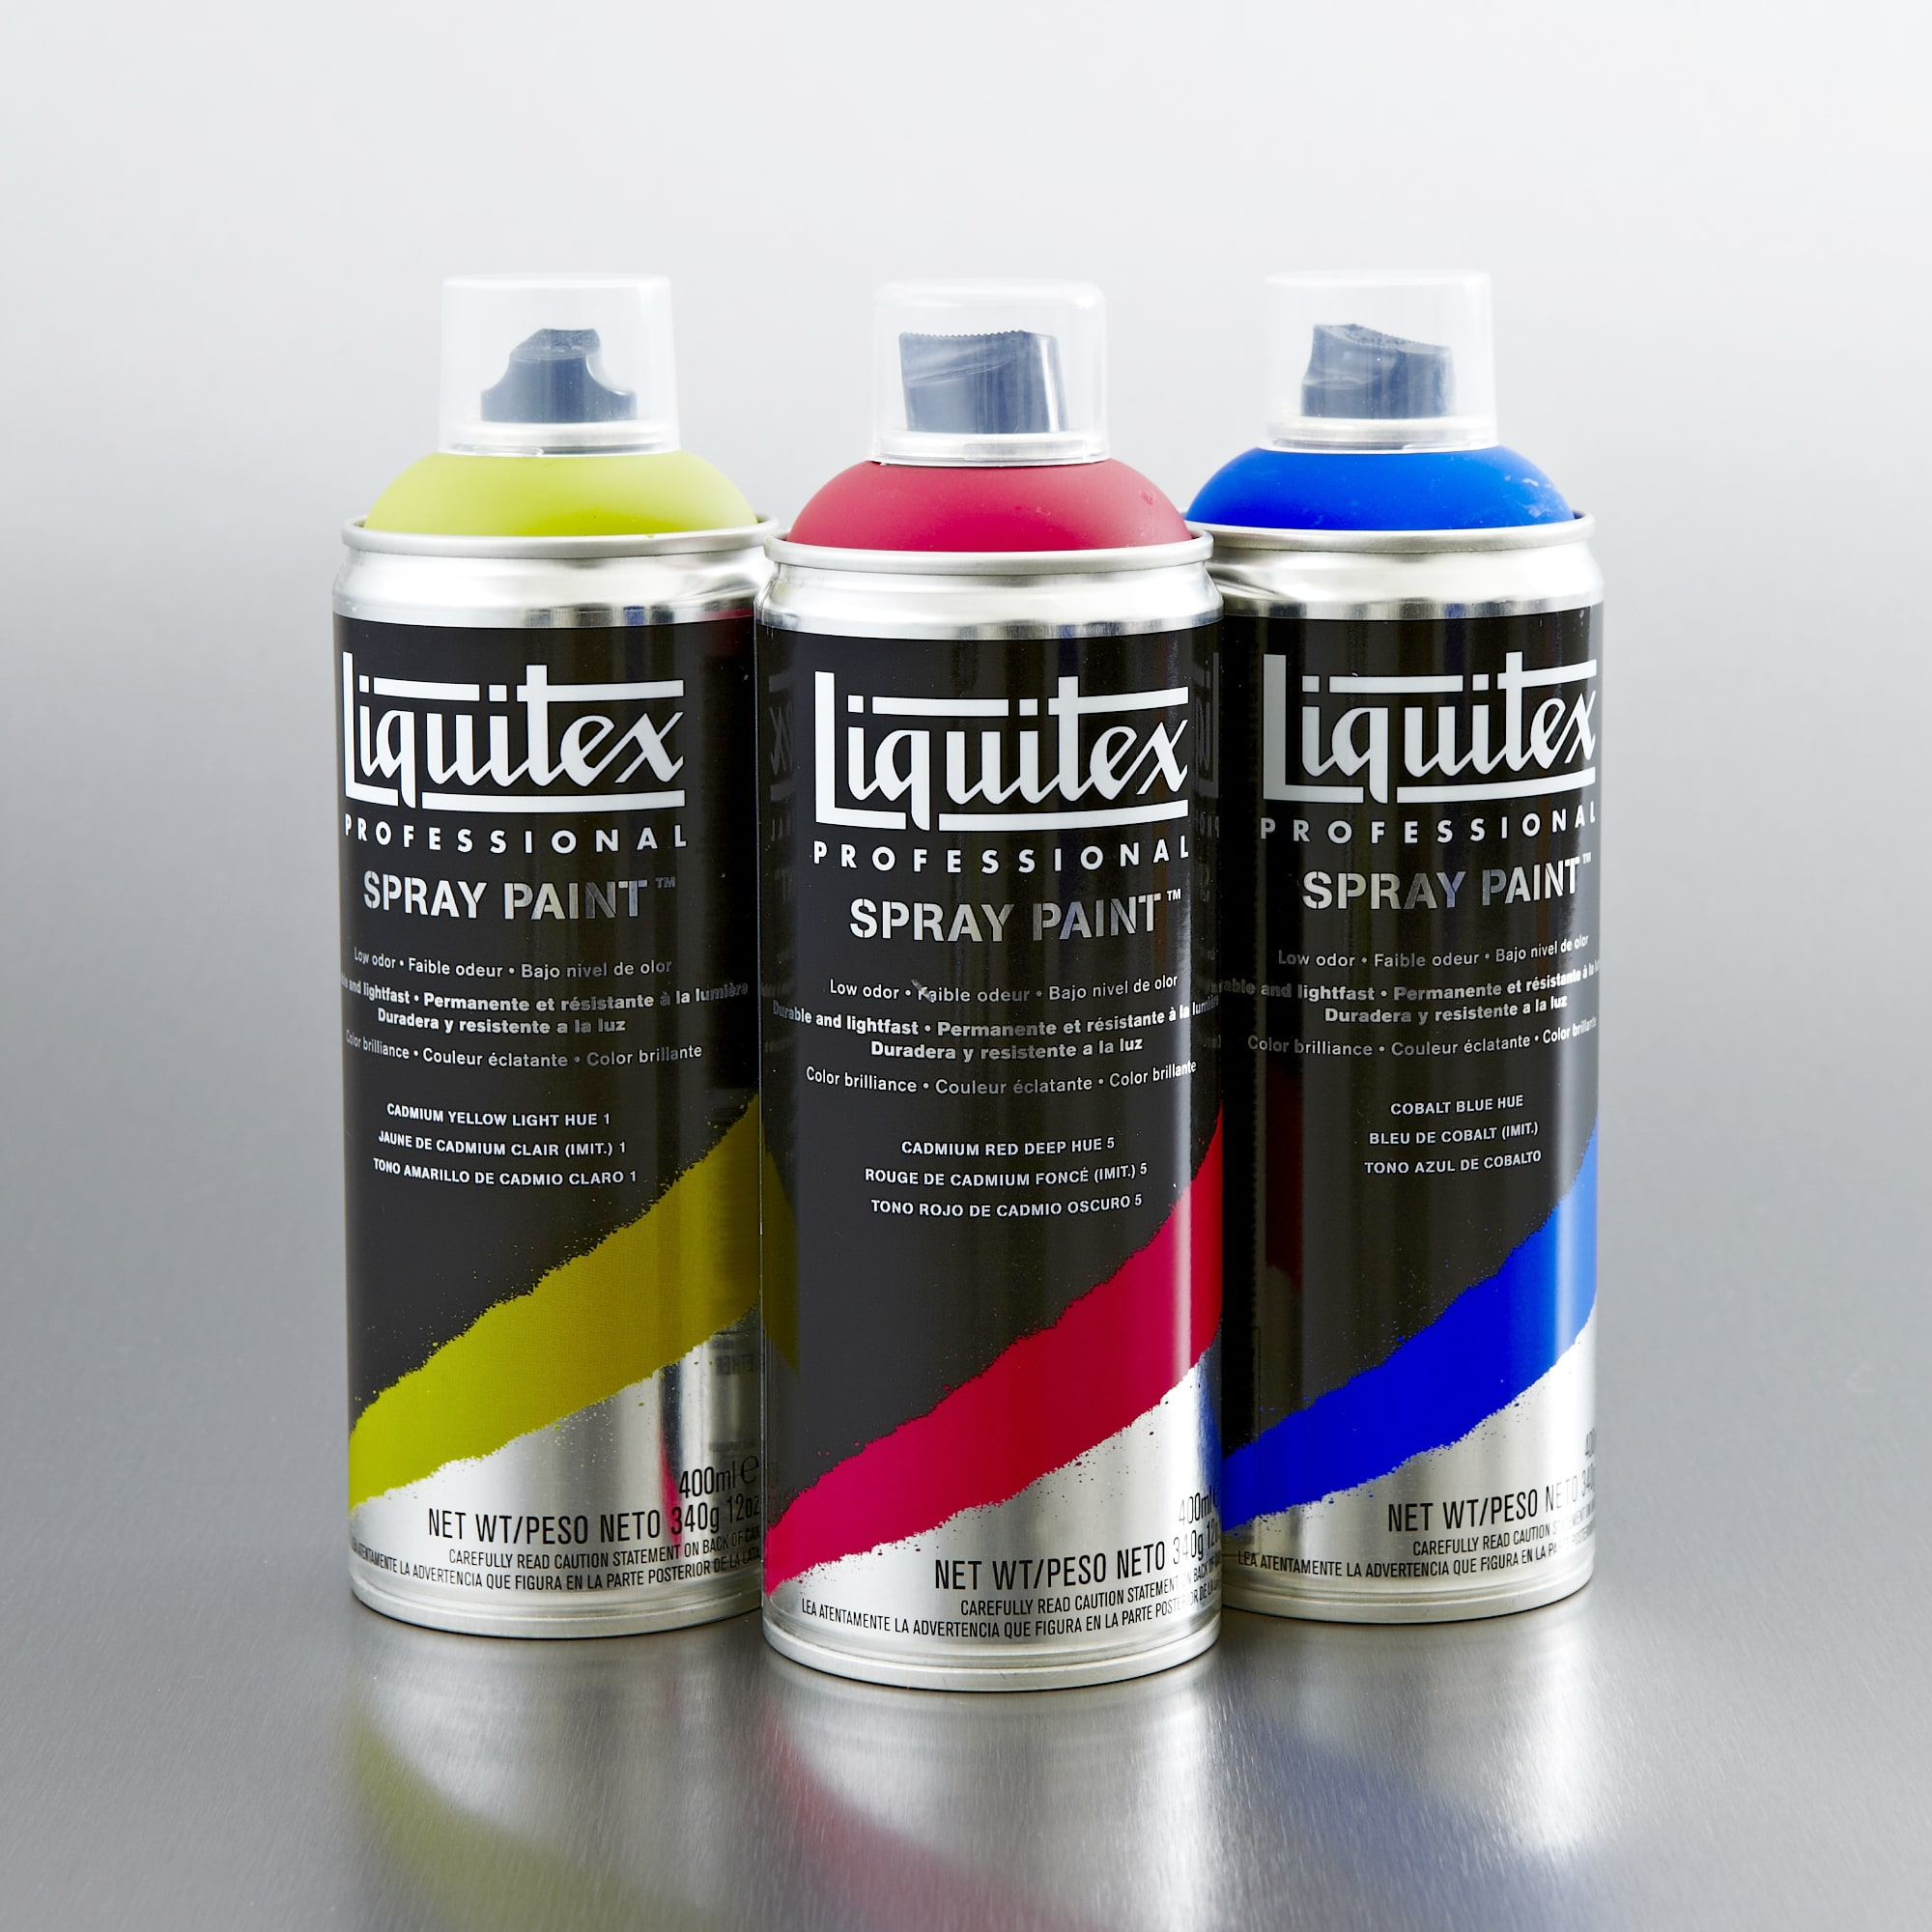 Liquitex Spray Paint 400ml Artist Acrylic Spray Paint